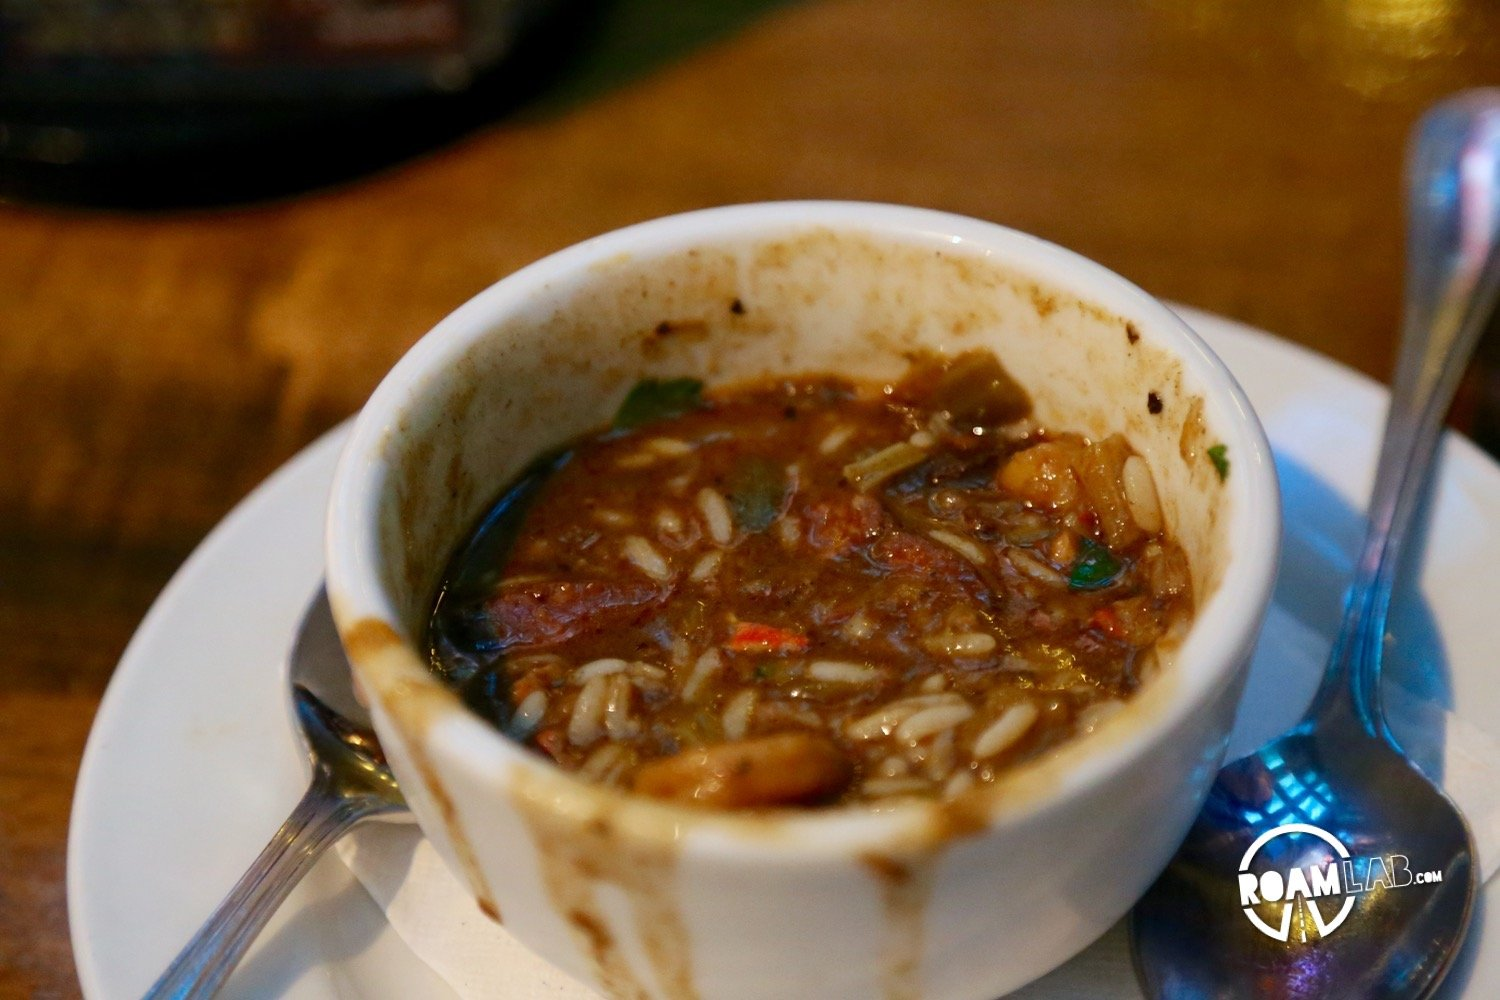 We didn't quite know what we were getting into when we ate that first bowl of gumbo. But then, the thought occurred to me...and I snapped a picture. Today, I regale you with the tail of our Great Gumbo Crawl.